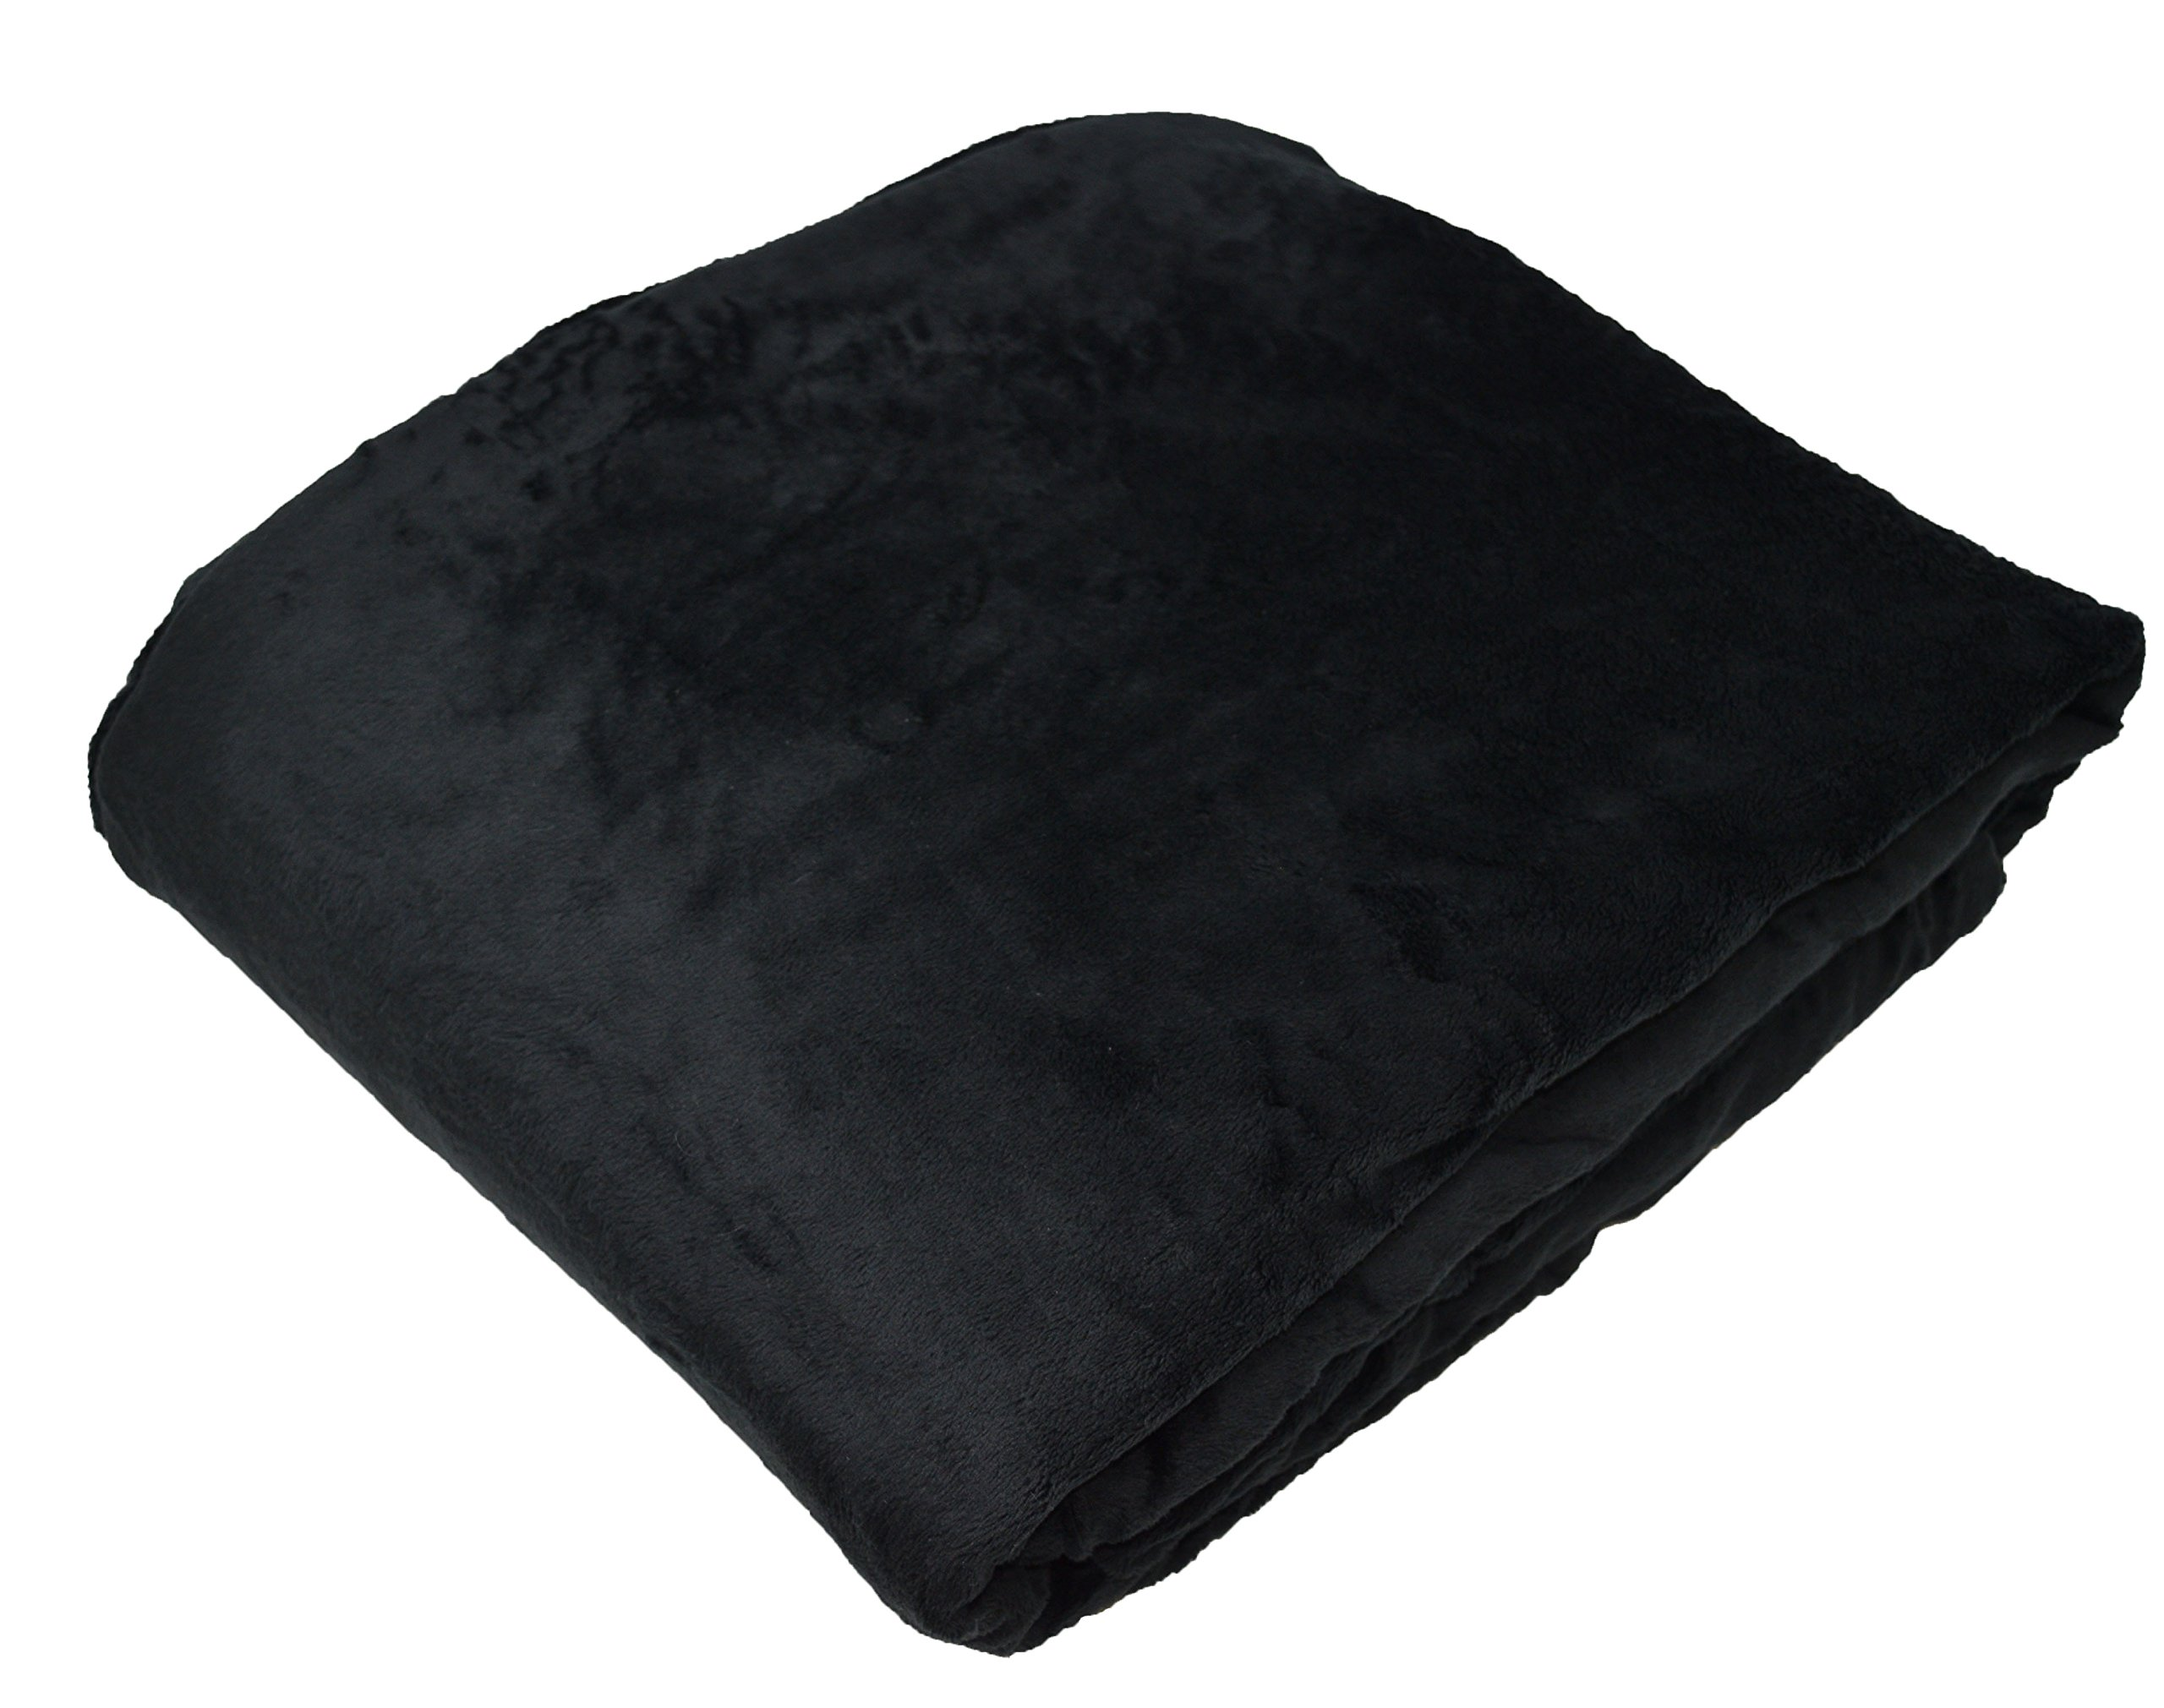 "KF Fabric Weighted Blankets Made in America (7lbs, 48""x30"") Black - Made with Softee Plush Fabric – Improve Your Sleep, Improve Your Life. Helps Calm You so You can Rest and Fall Asleep. by KF Fabric (Image #3)"